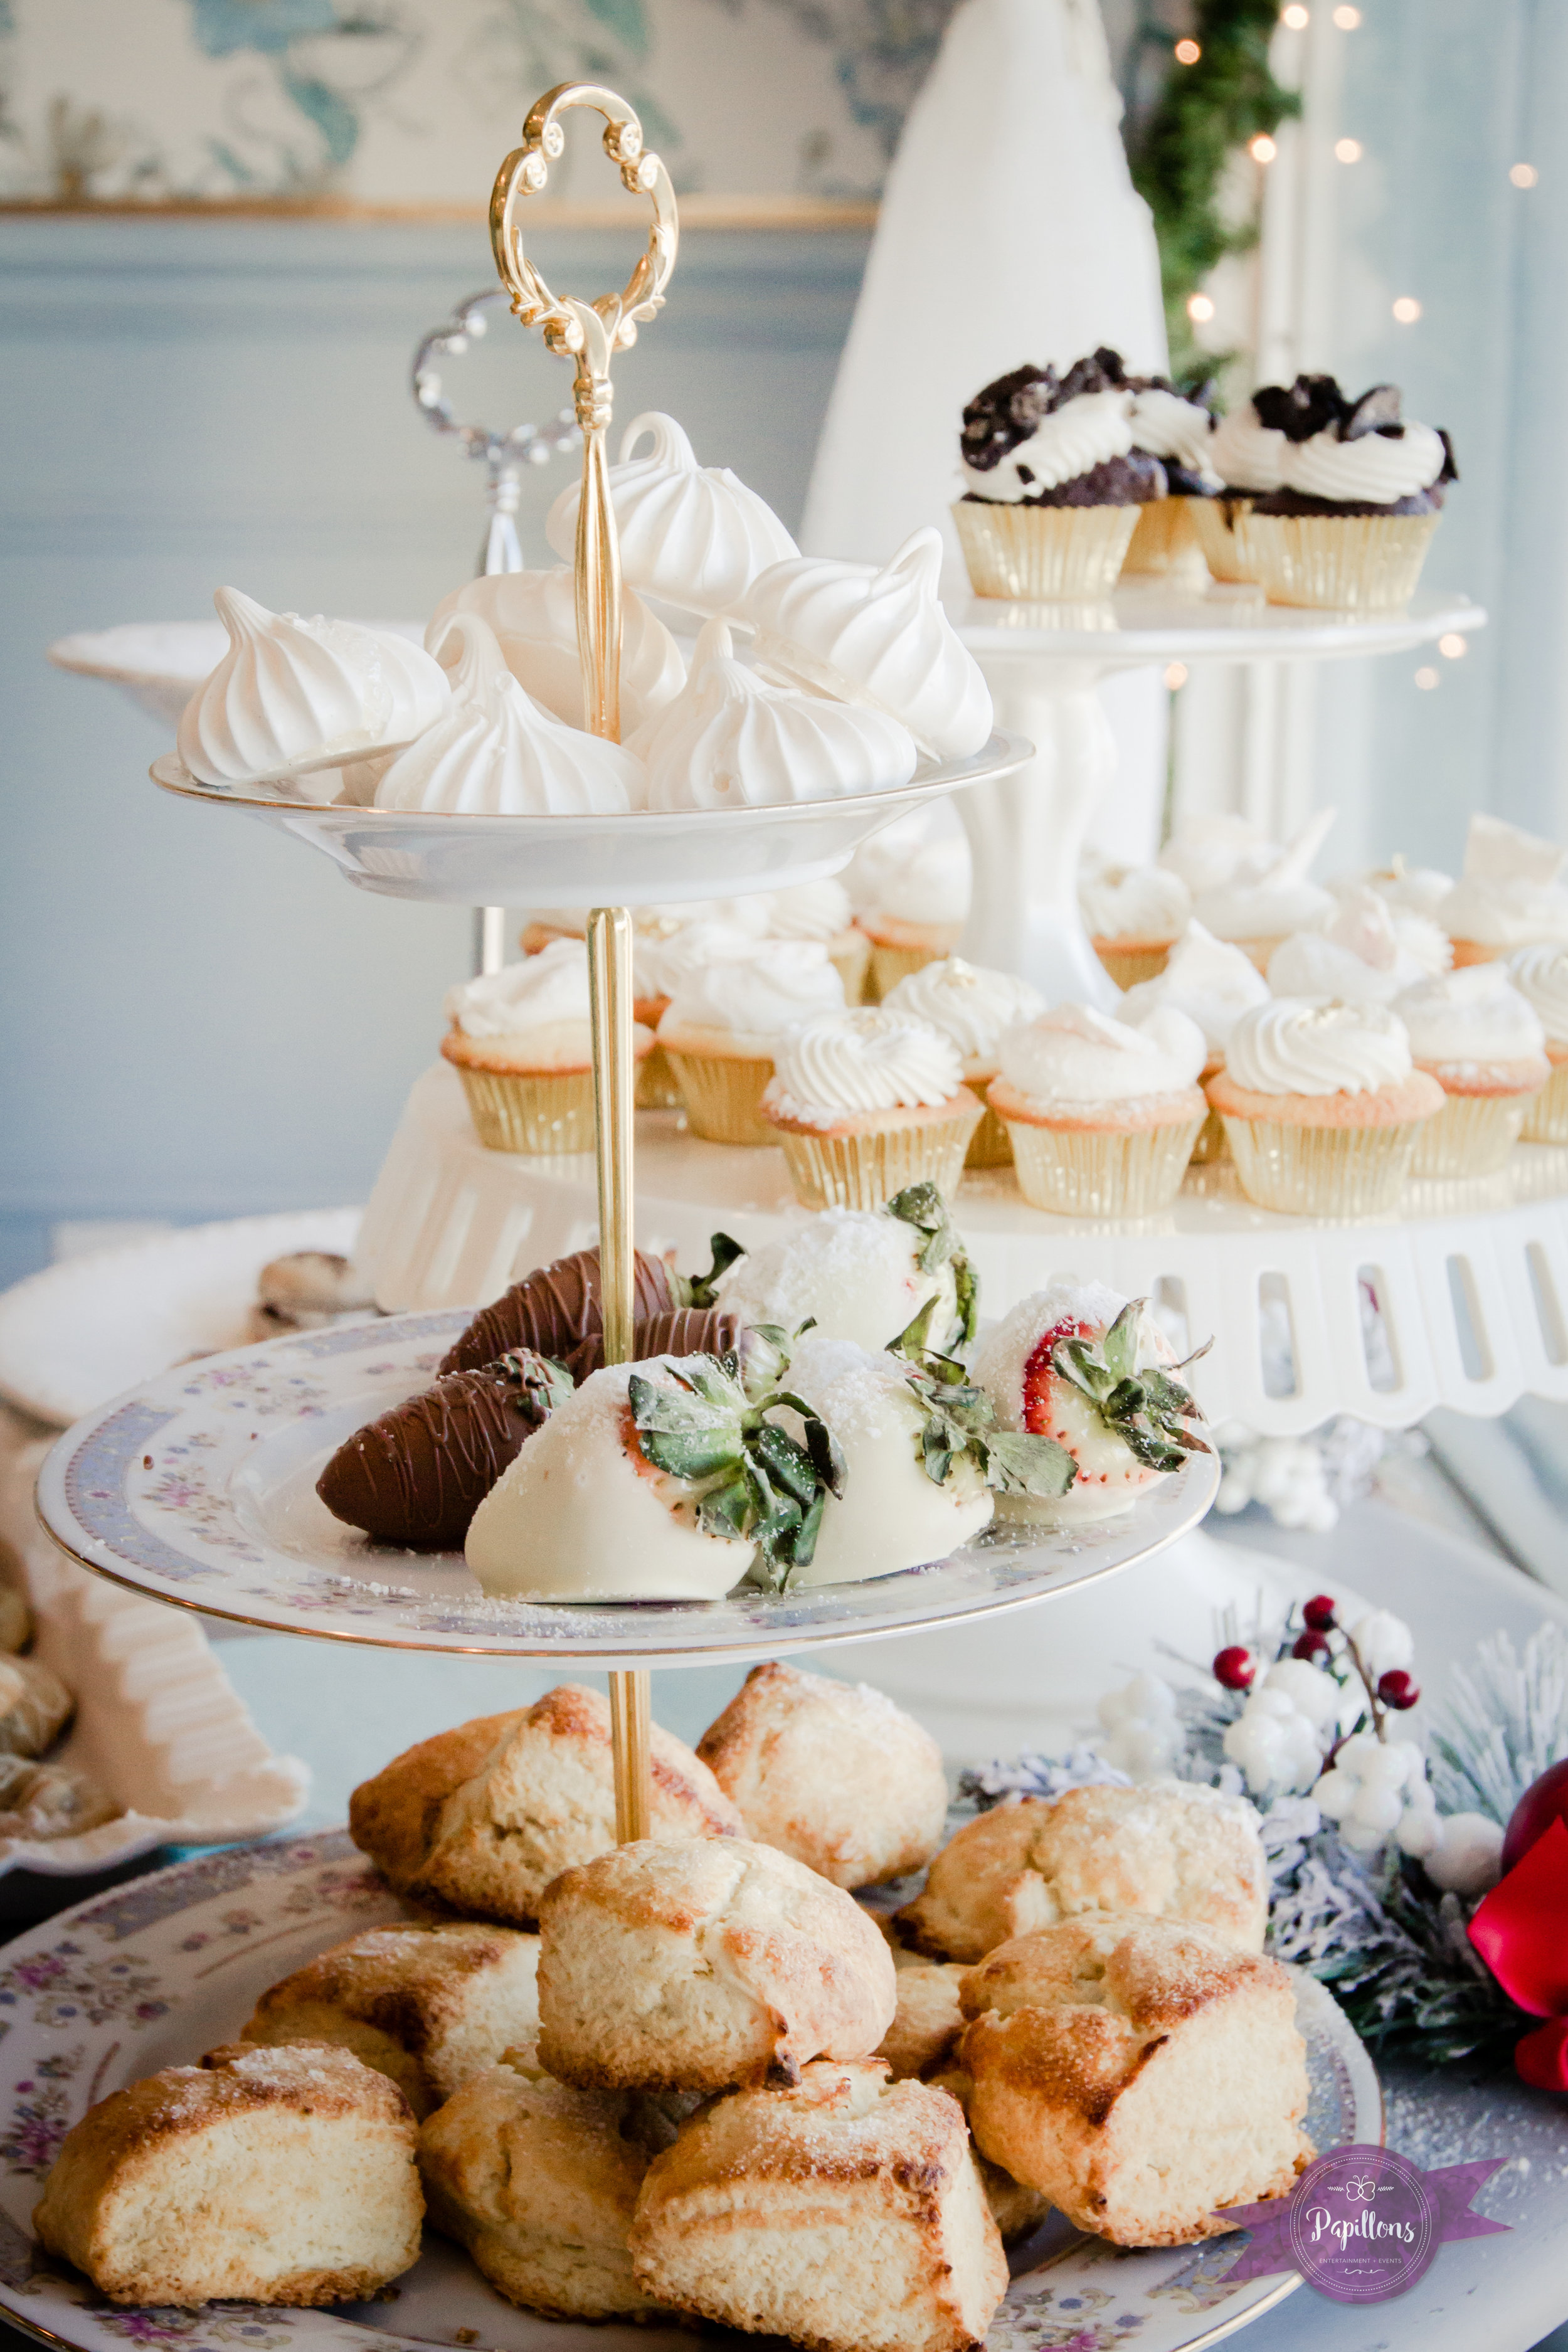 french confection co tea party burbank los angeles (1 of 1).jpg